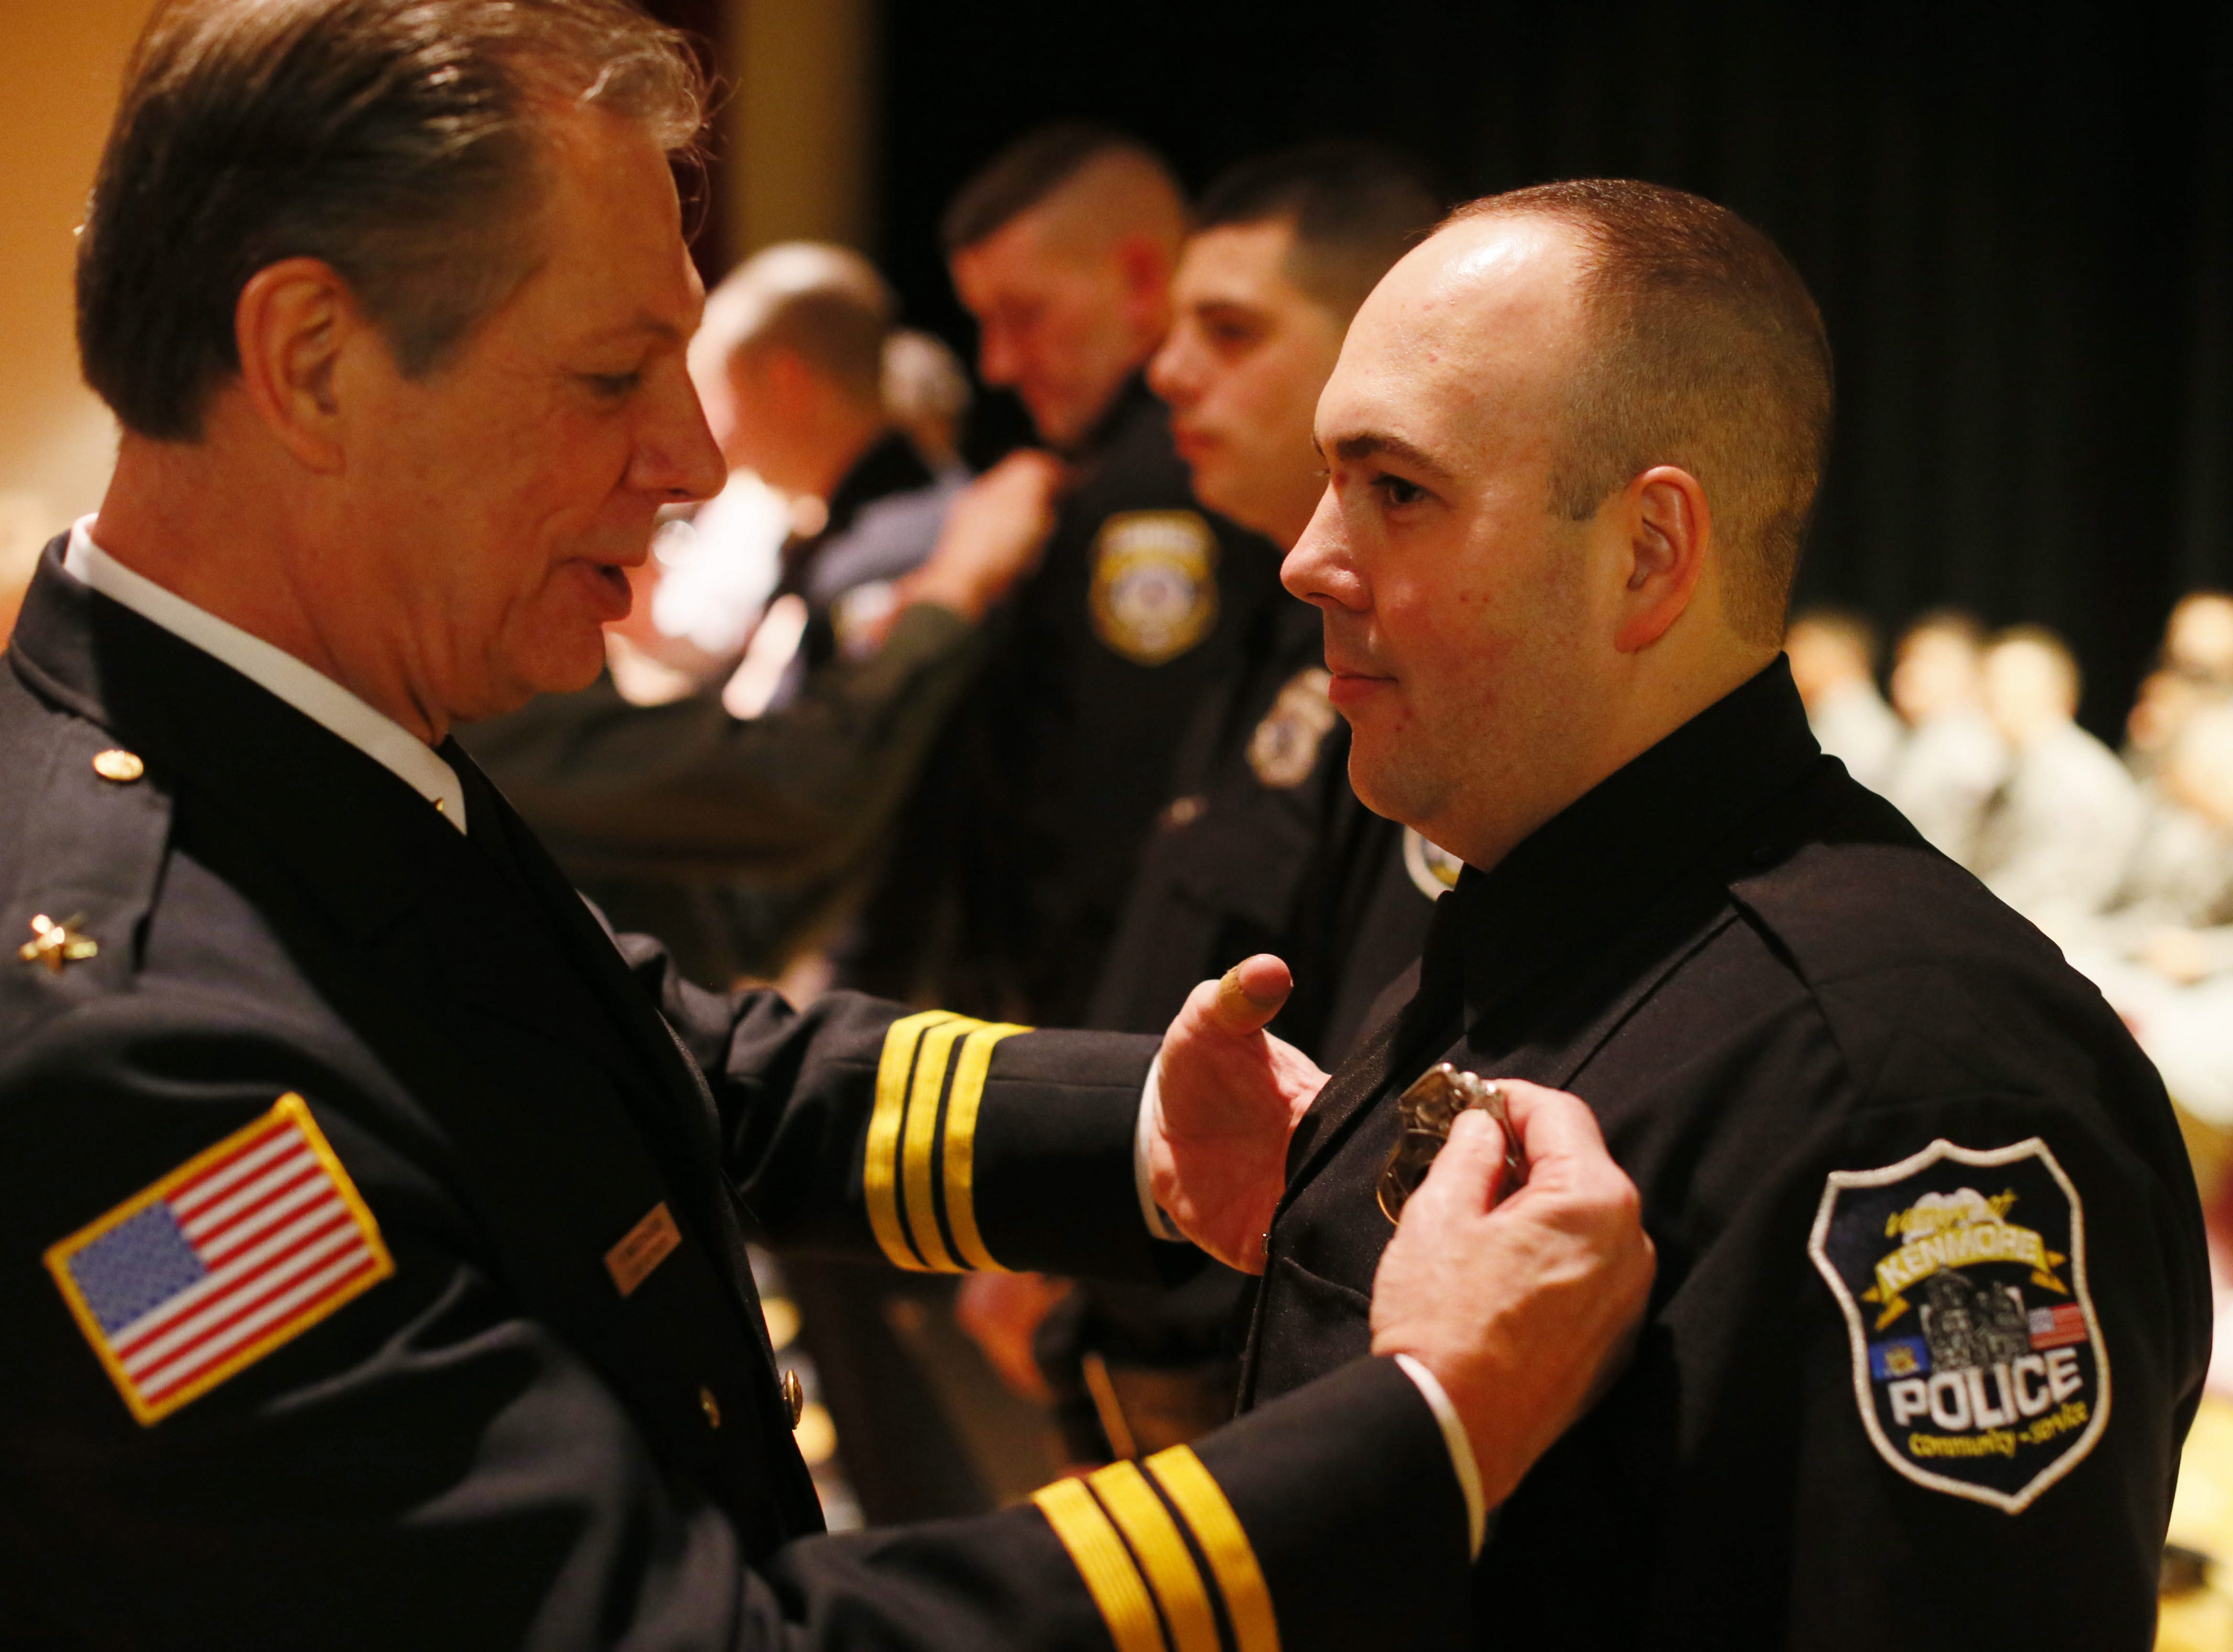 Kenmore Police Chief Peter Breitnauer, left, pins a badge on new police officer Joshua B. Davidson on Dec. 20, 2013, at the Erie Community College police academy graduation. (Derek Gee/Buffalo News)